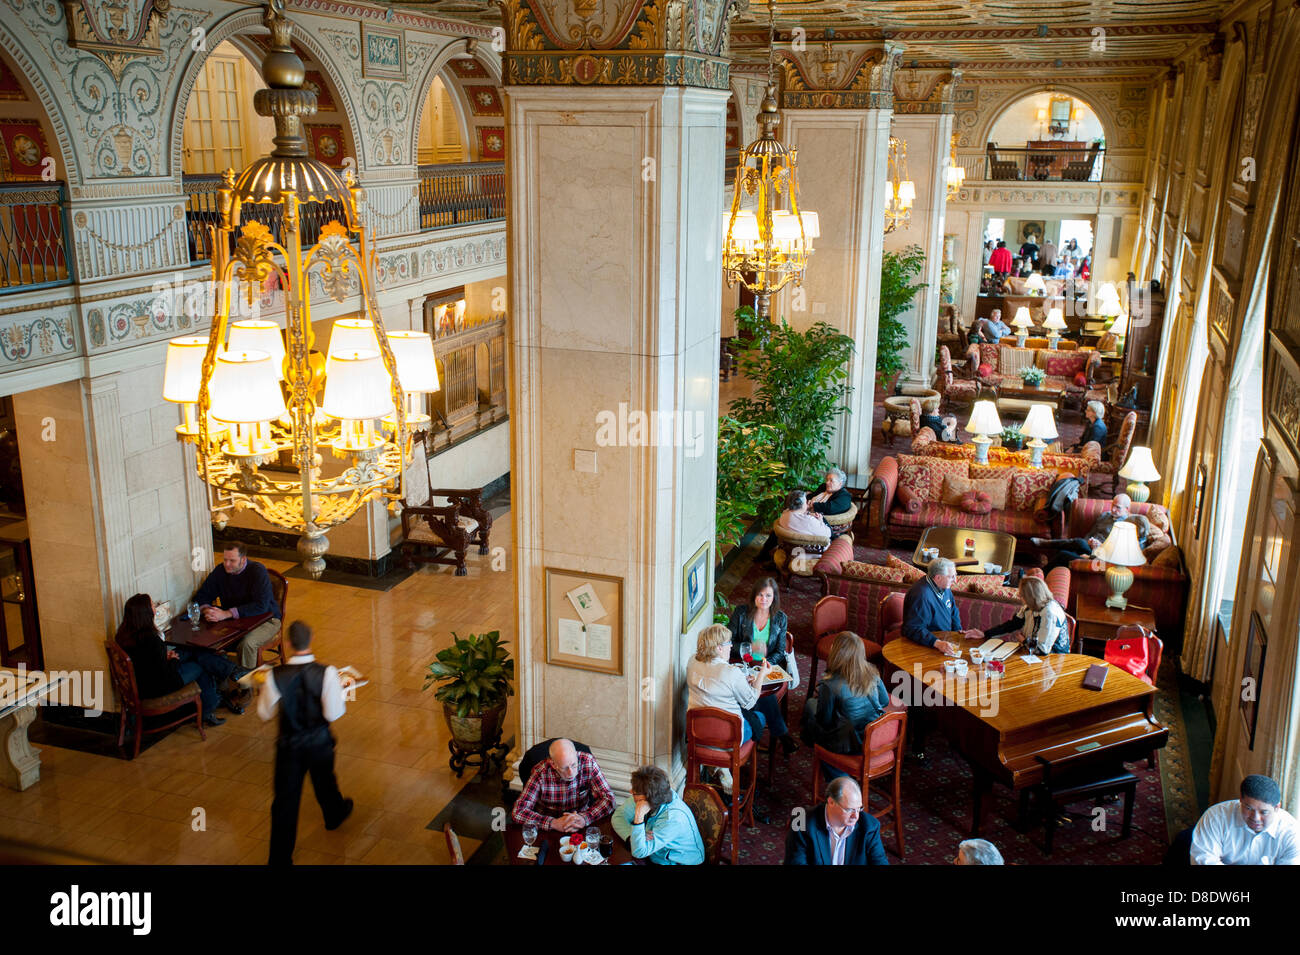 louisville-kentucky-the-brown-hotel-lobby-built-in-1923-the-opulent-D8DW6H.jpg